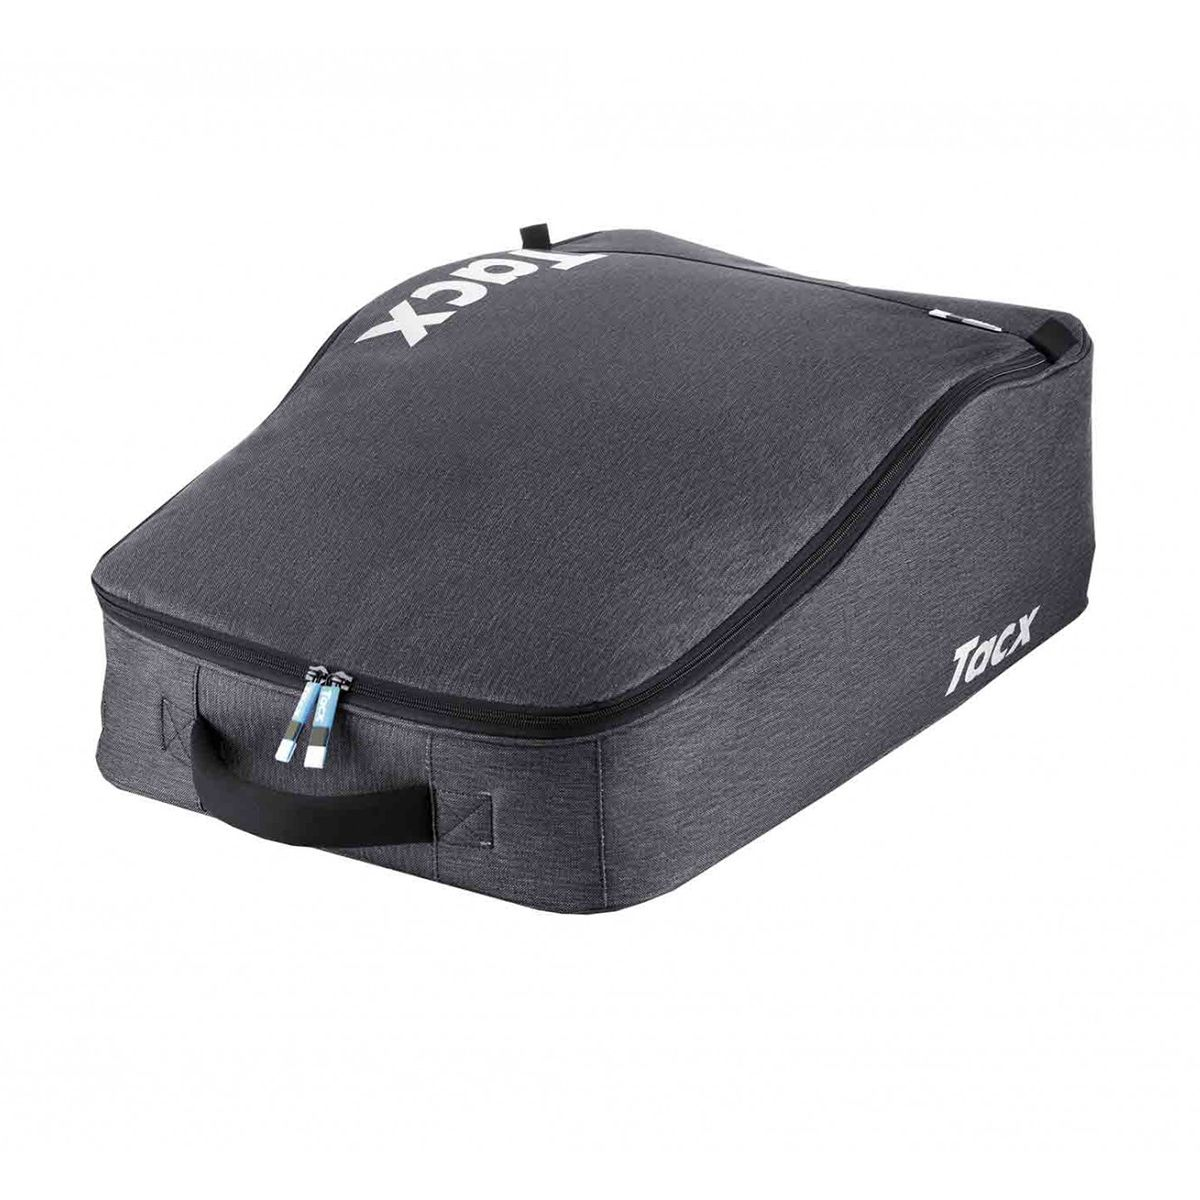 T2960 home trainer bag